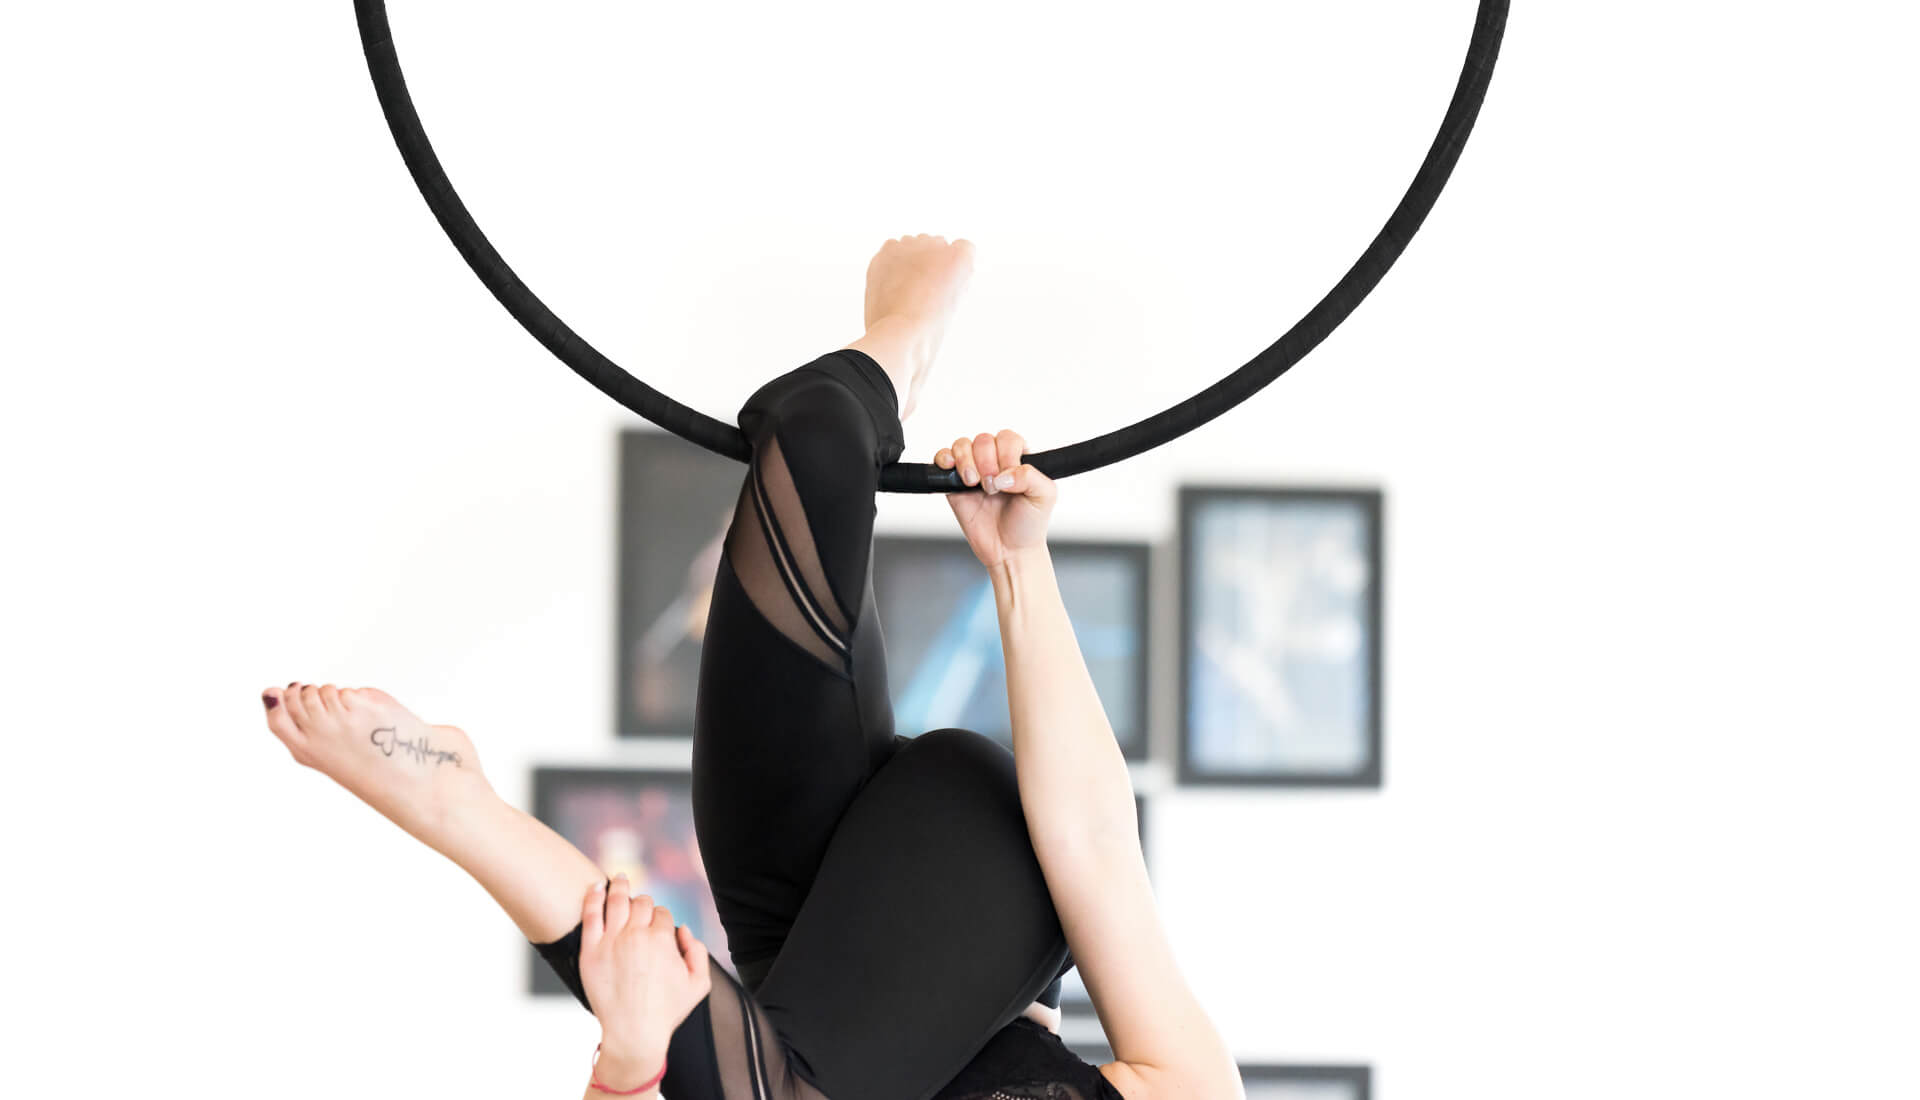 Pole dance hoop